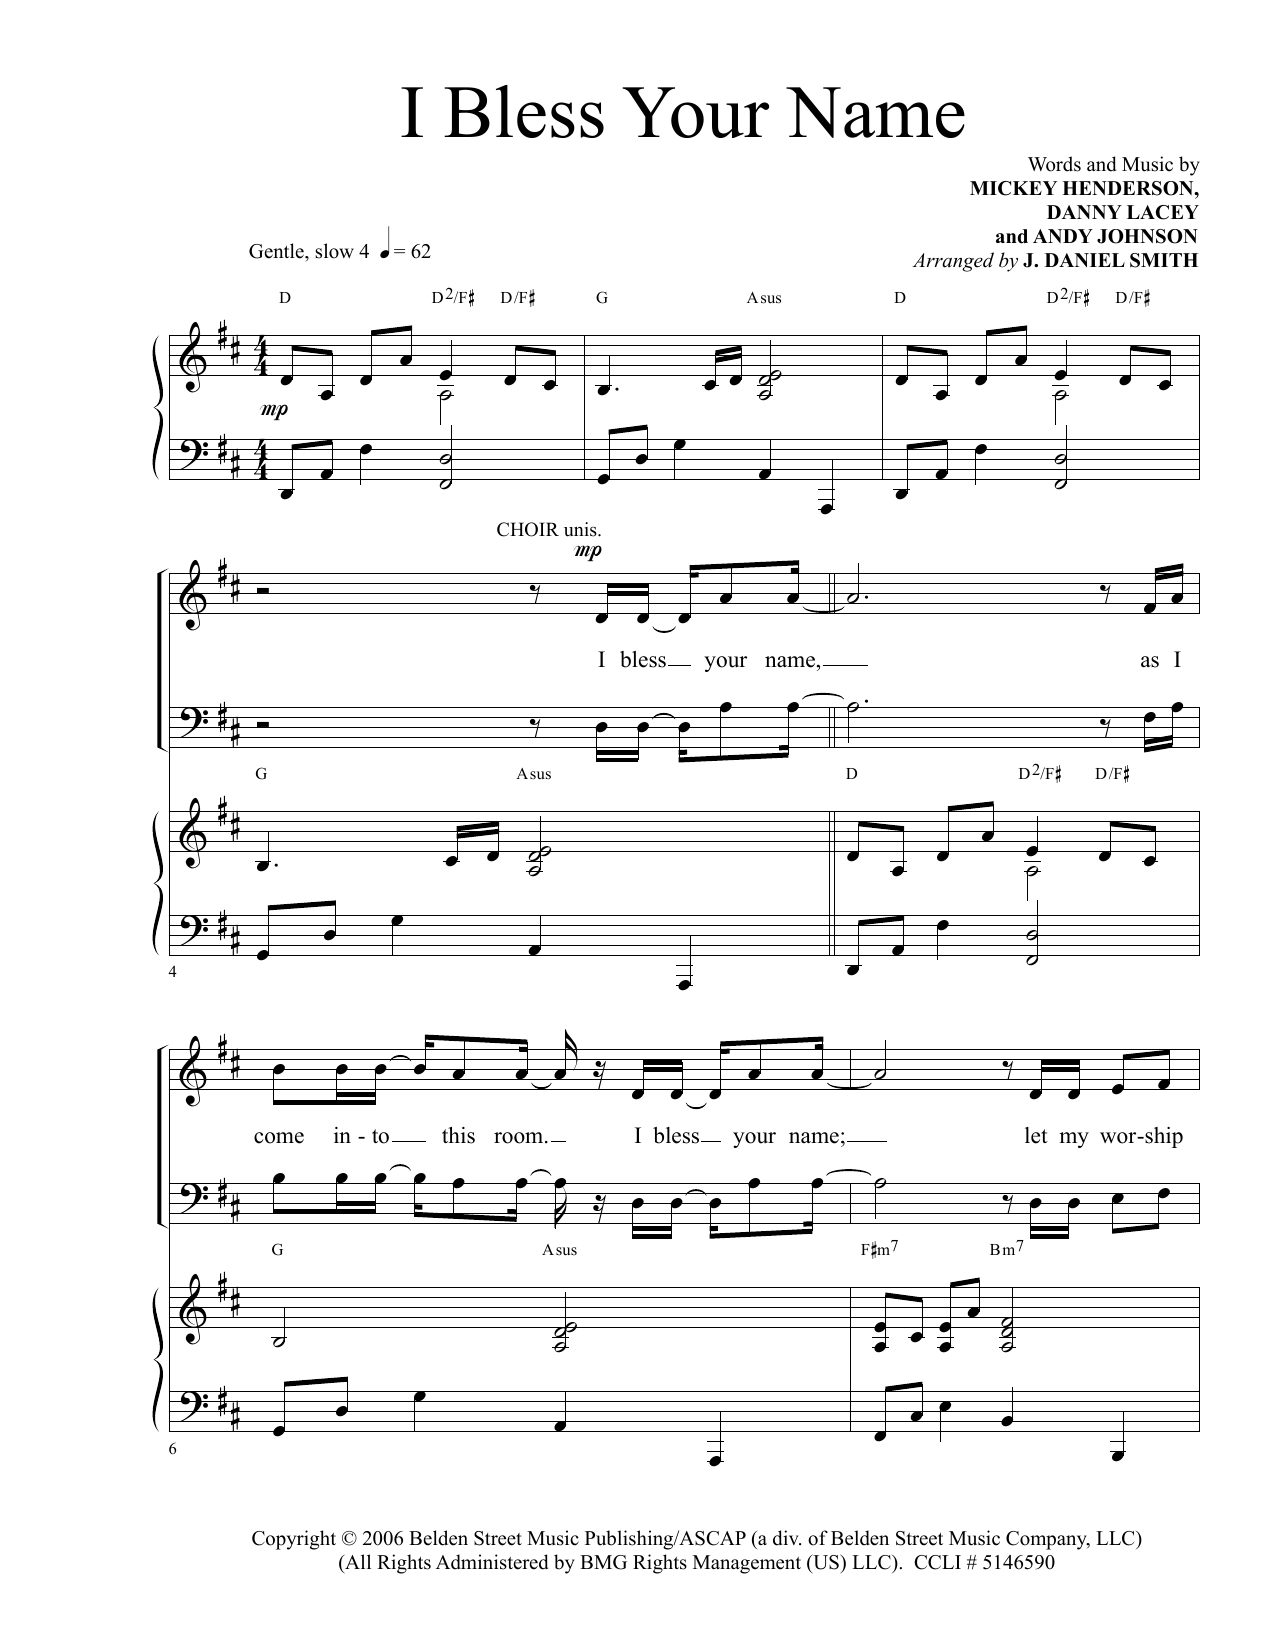 I Bless Your Name Sheet Music